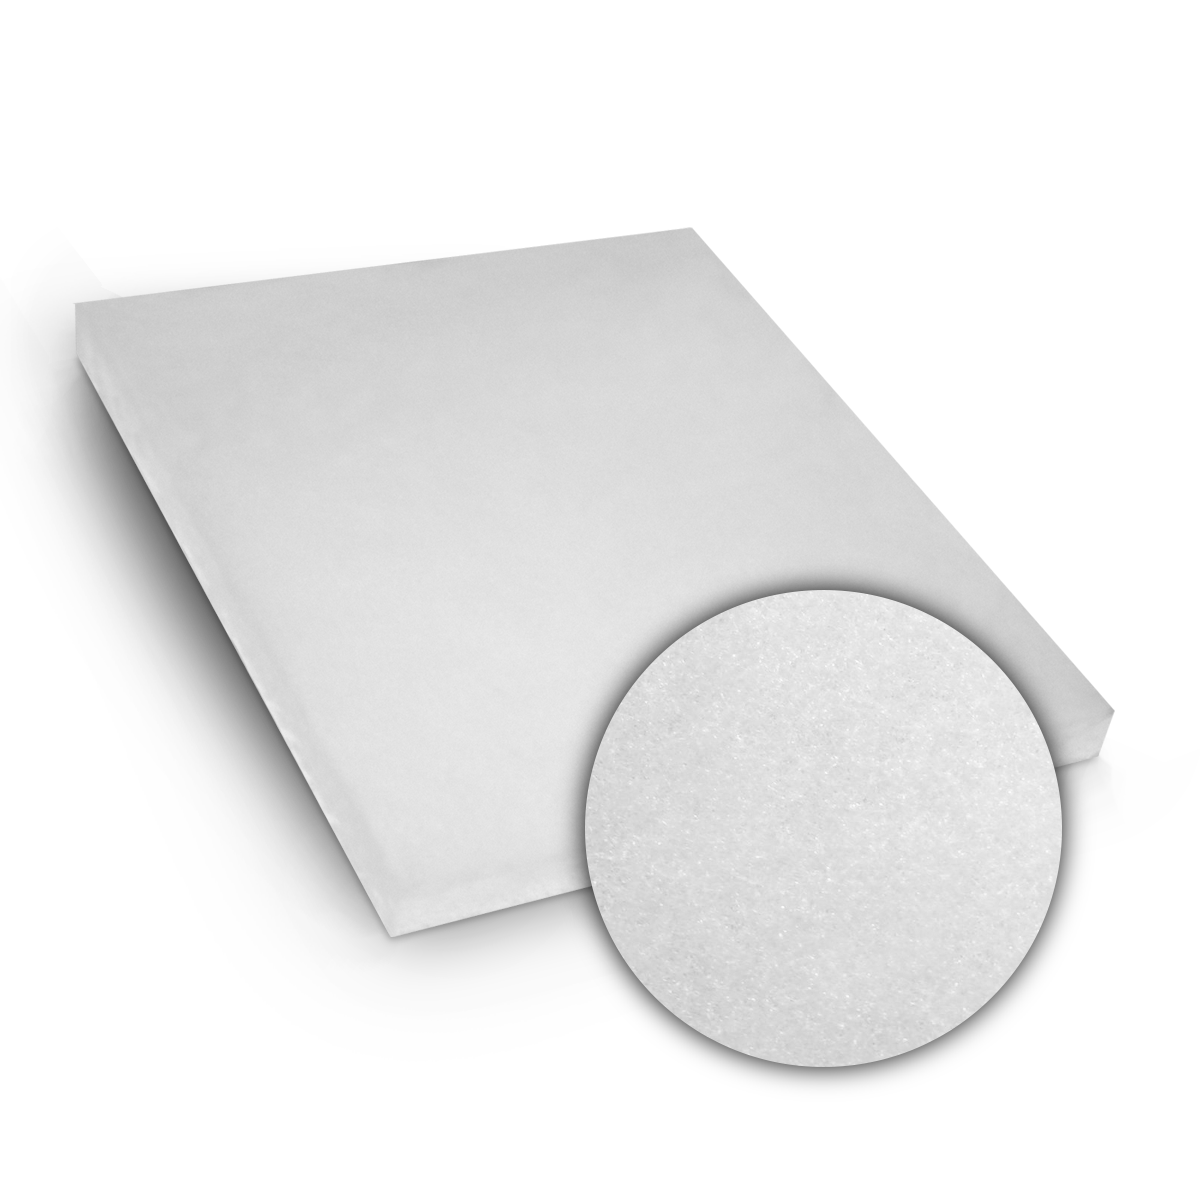 25x25x1 Sure-Fit LEVEL 10 MERV 10 Anti-Microbial Pad